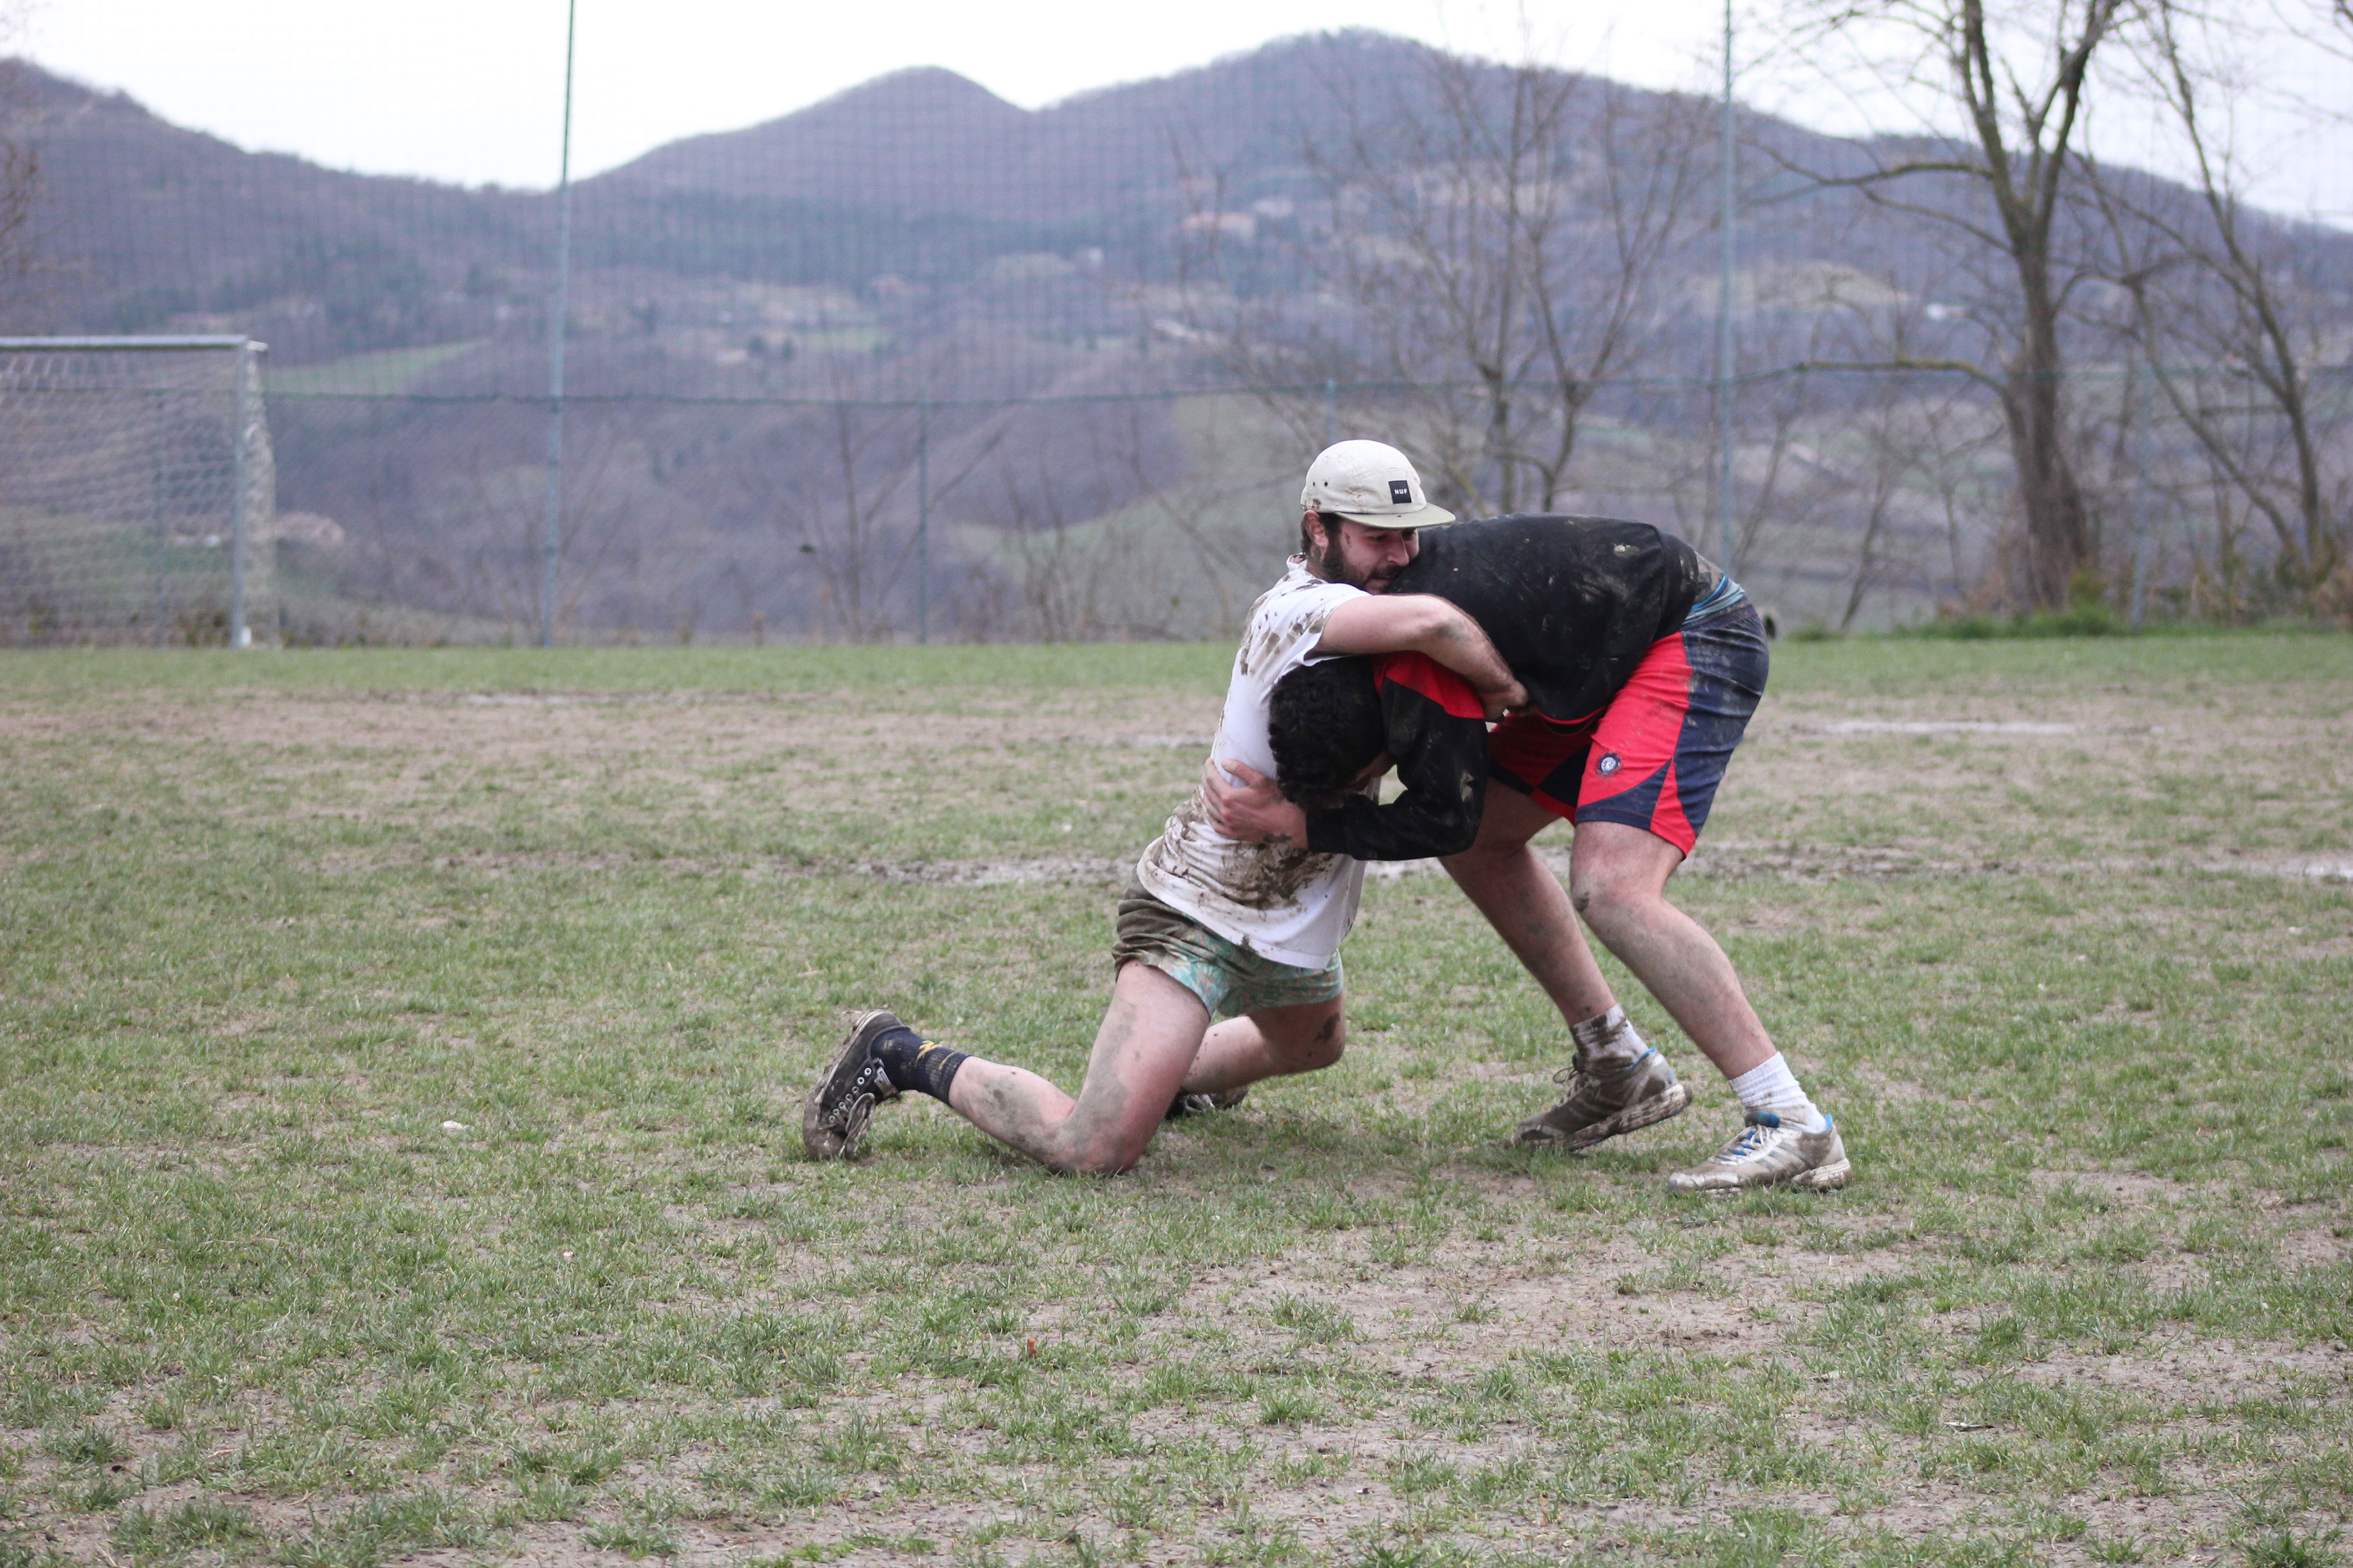 Two men wrestle on a field with hills in the background.